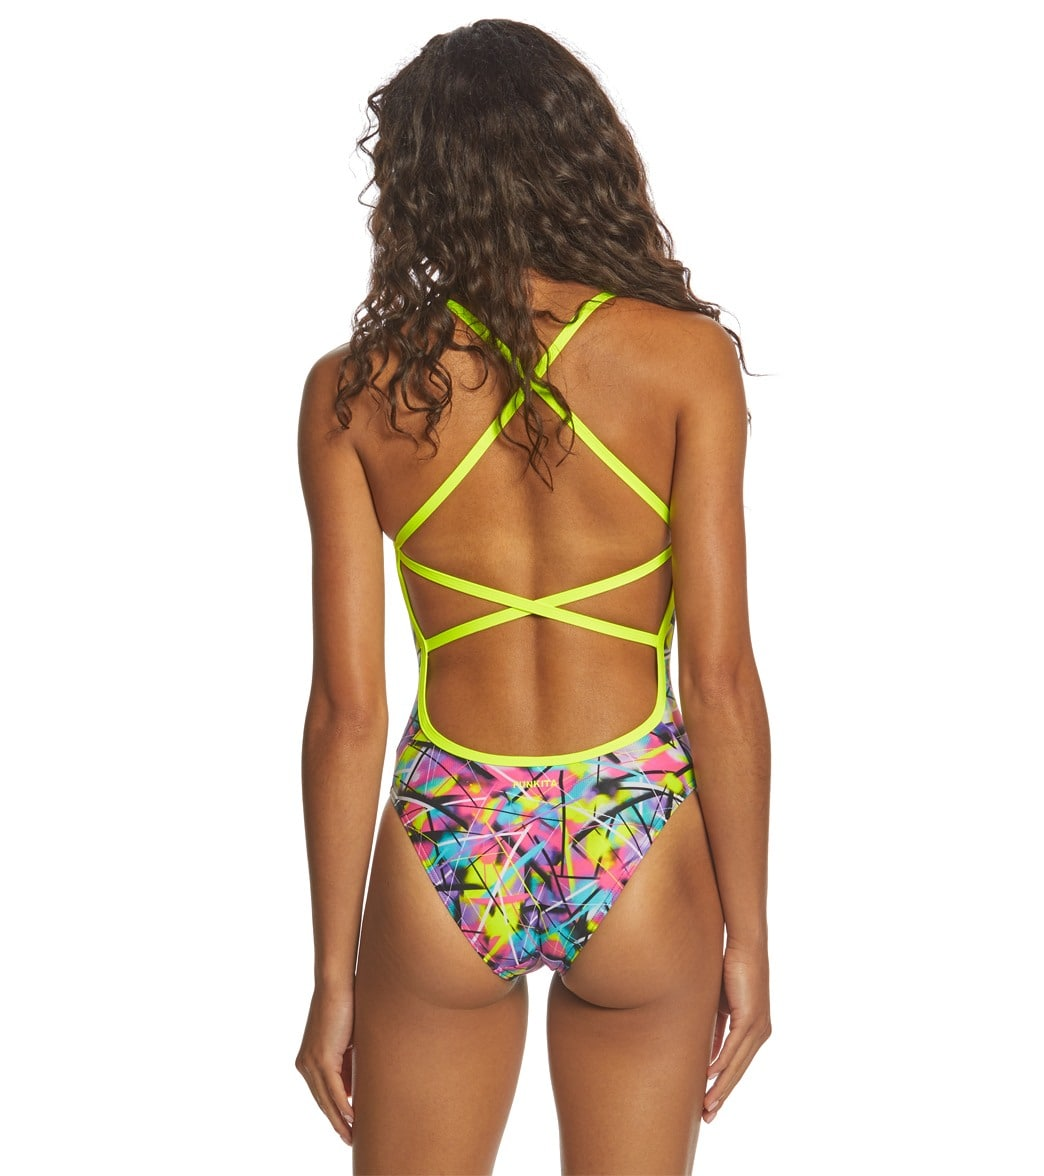 3561e4be8d Funkita Women's Spray On Strapped In One Piece Swimsuit at ...